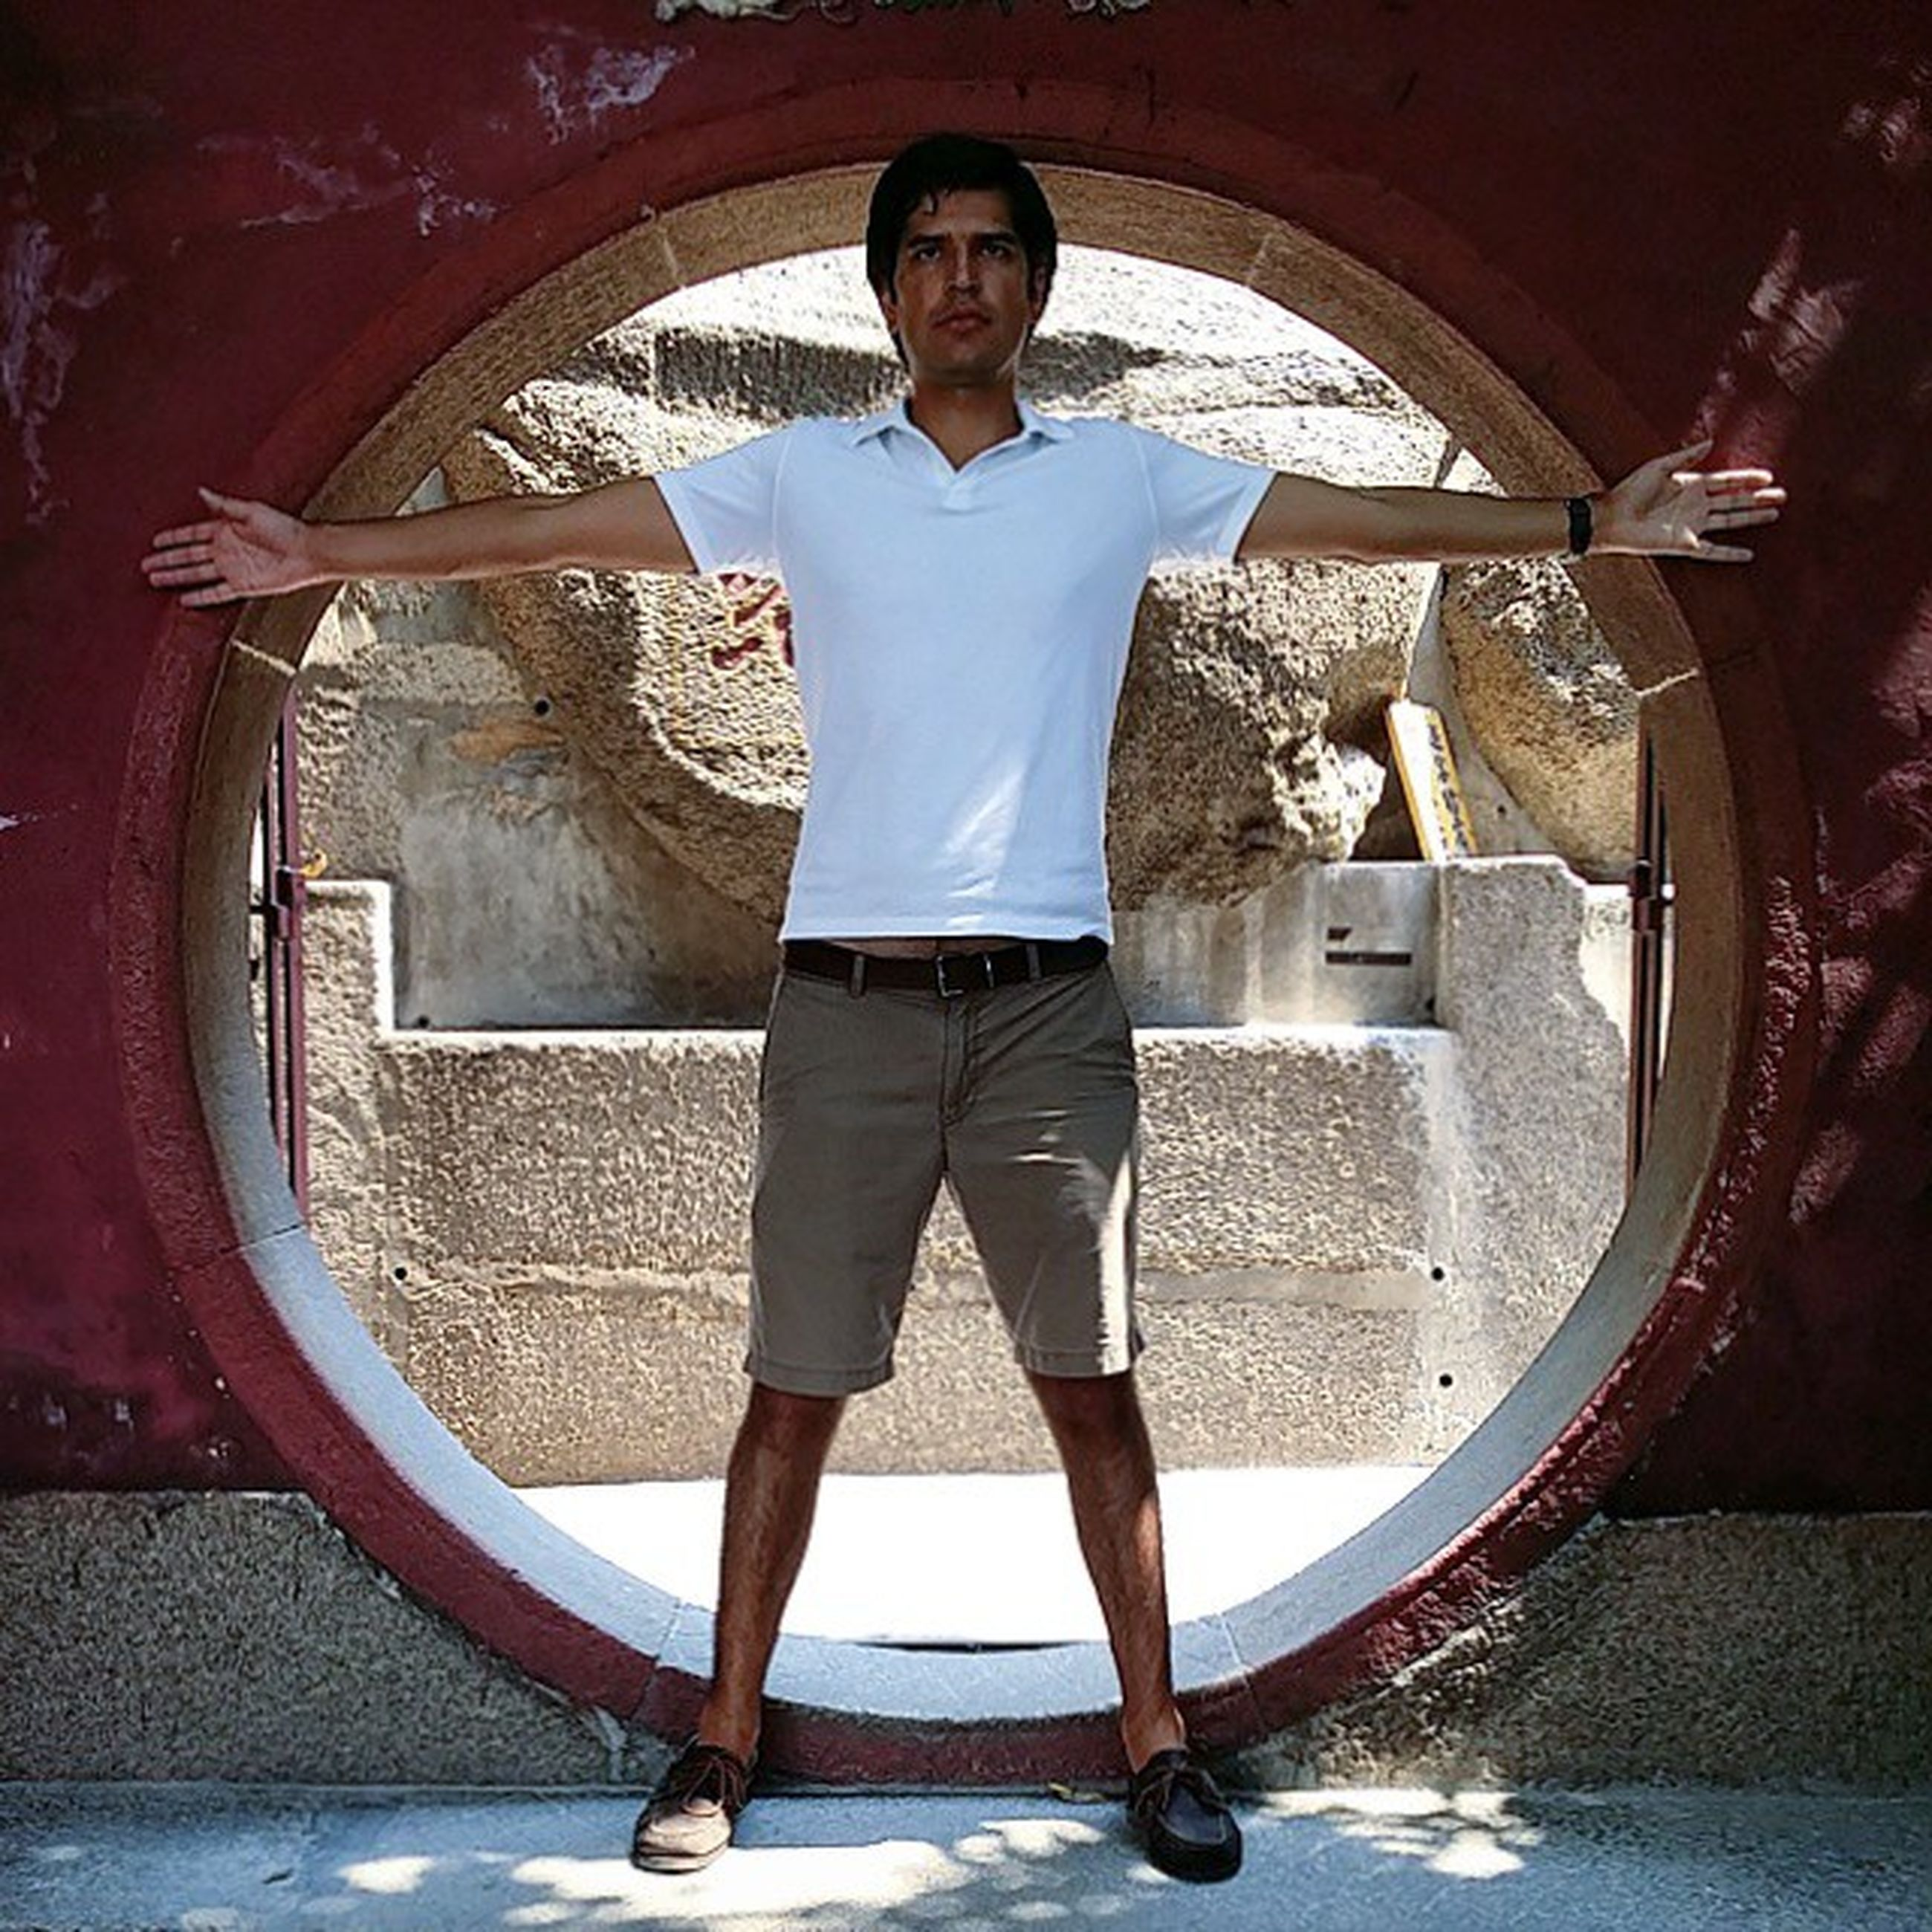 indoors, arch, standing, front view, casual clothing, lifestyles, looking at camera, portrait, leisure activity, architecture, full length, young adult, built structure, person, circle, day, door, archway